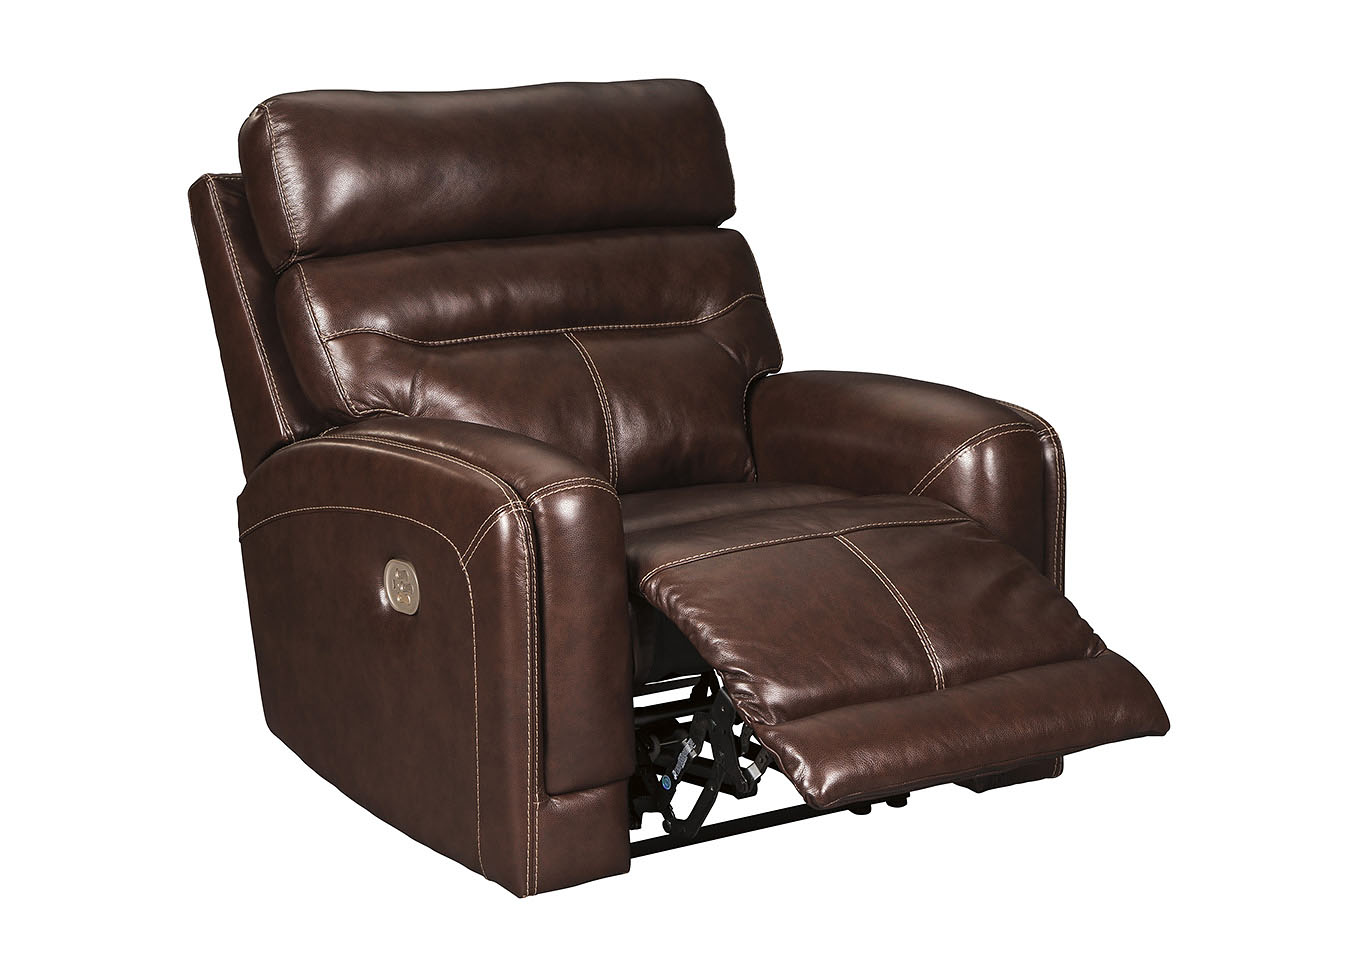 Sessom Walnut Power Recliner w/Adjustable Headrest,Signature Design By Ashley